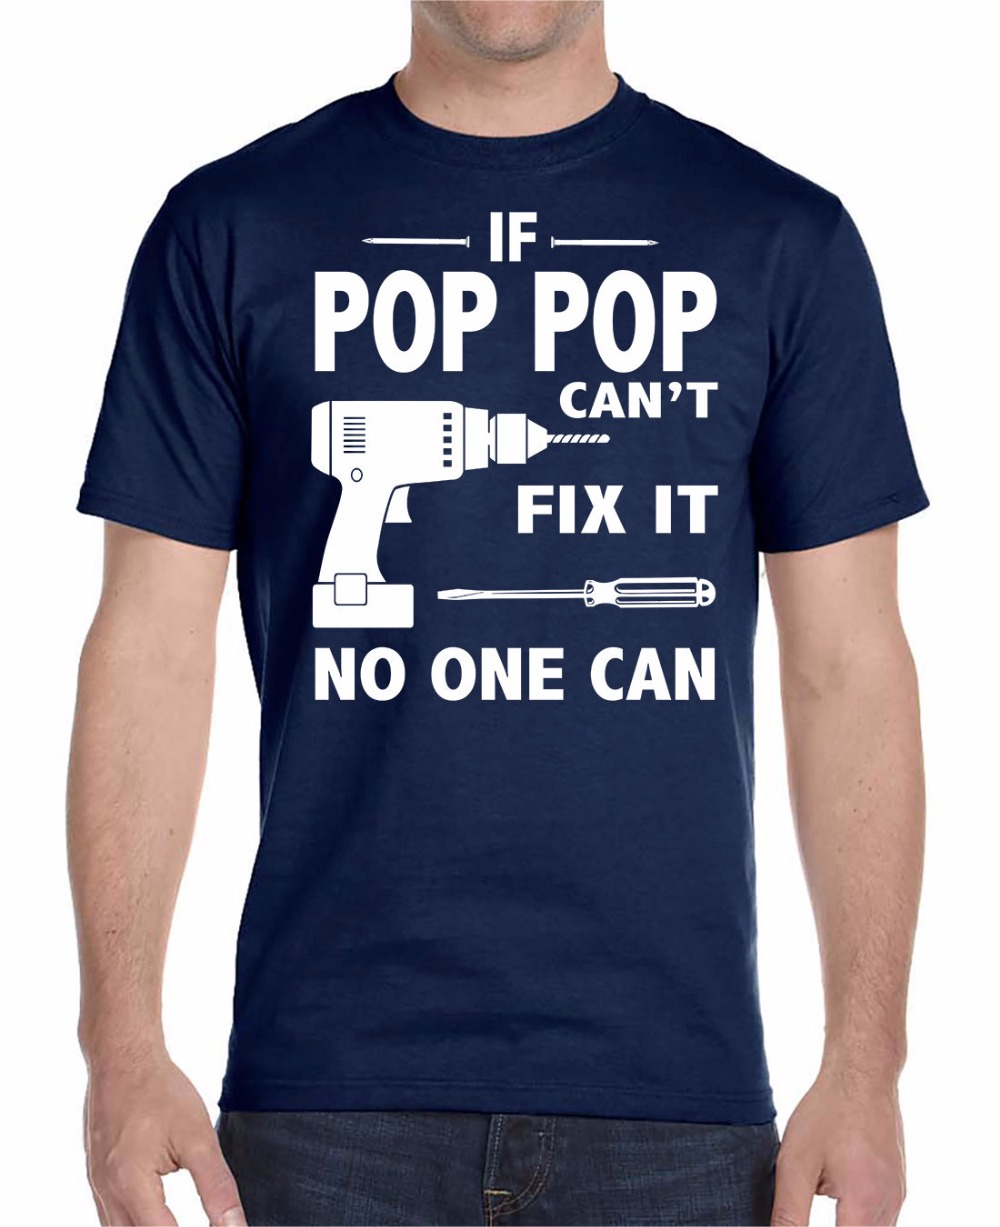 2018 New Design O-Neck Short Sleeves Male Basic Tops Famous If Pop Pop Can't Fix It No One Can Print T Shirt Men